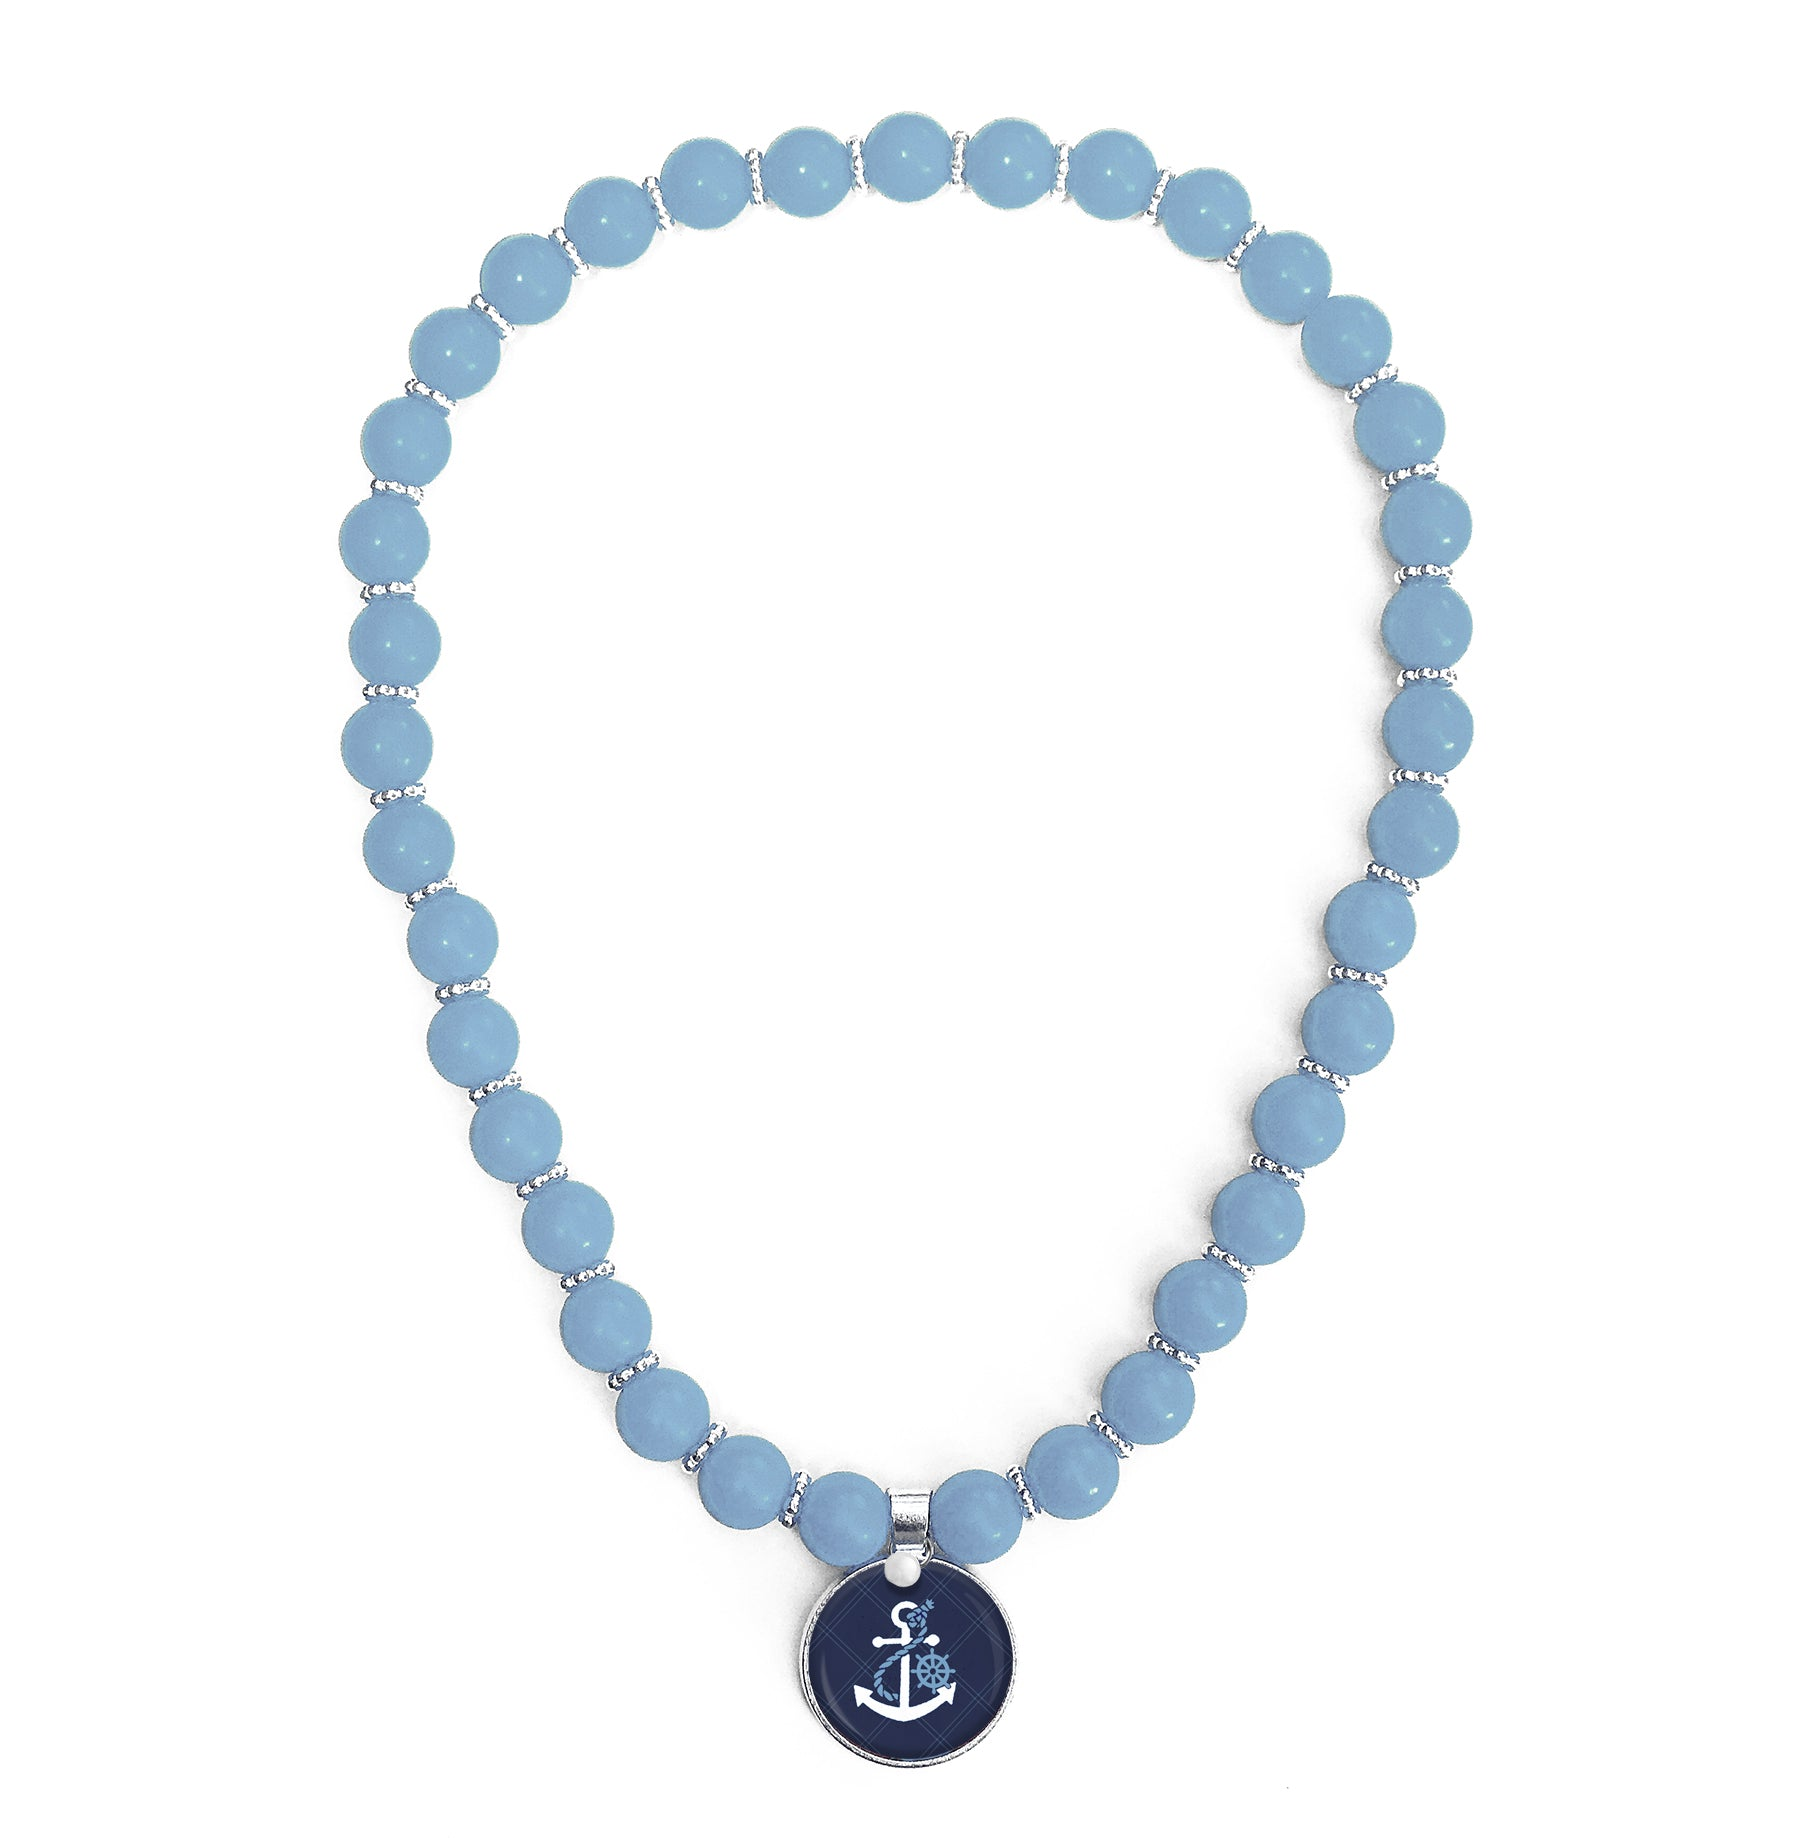 Anchors Away Beaded Necklace